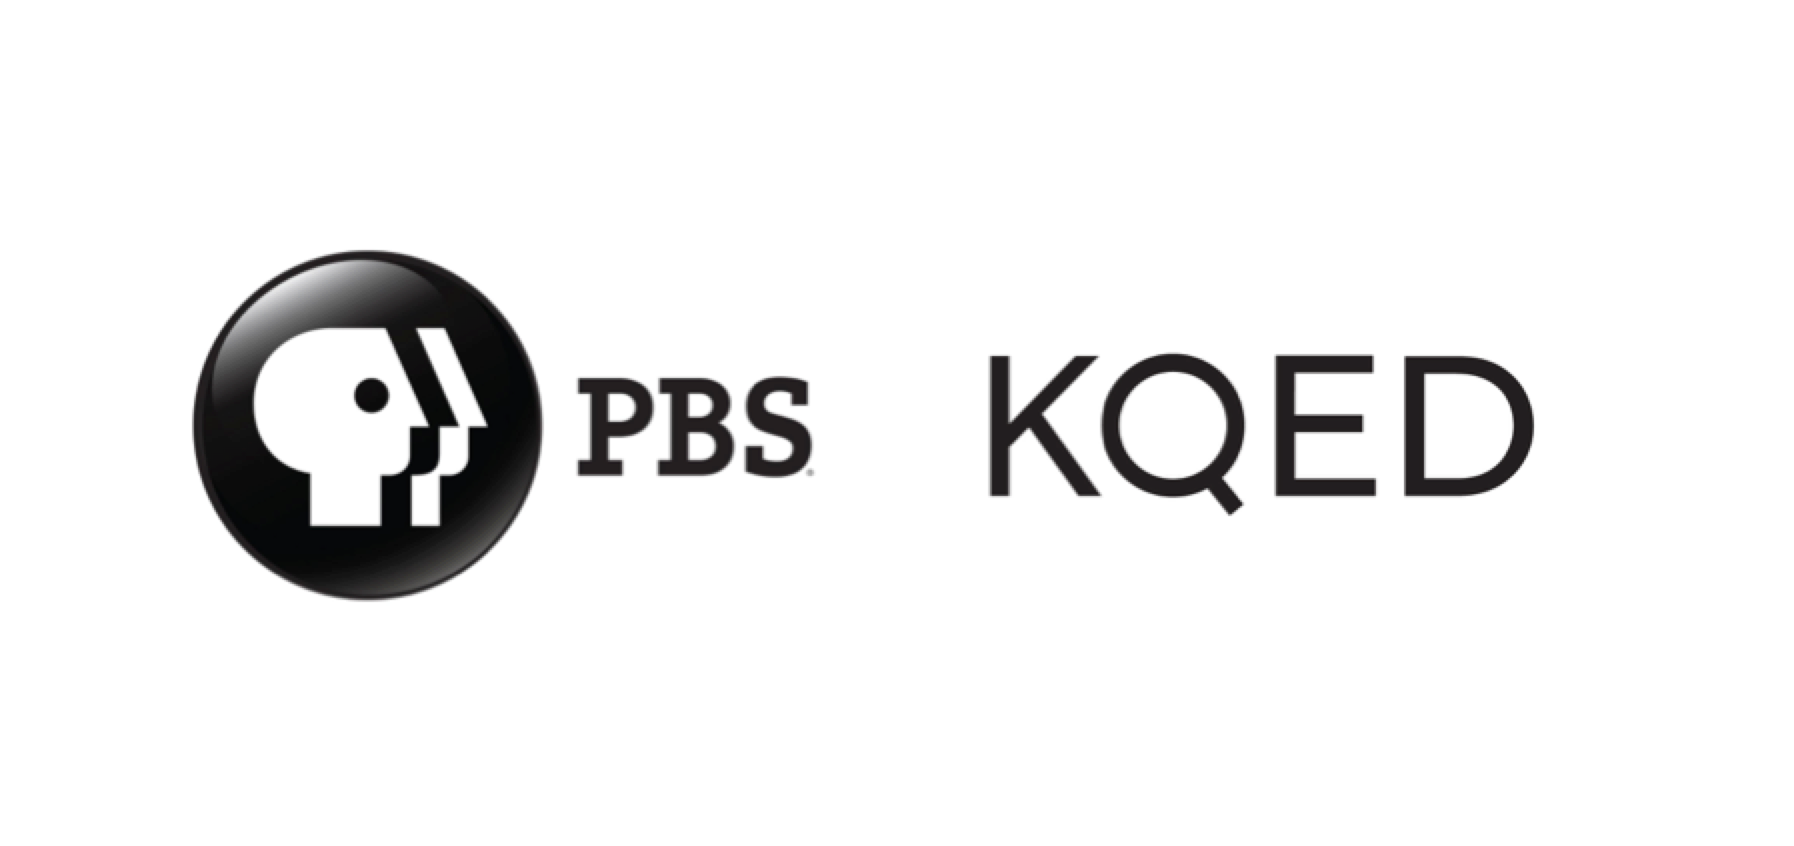 Pbs And Kqed Partner To Provide Educators With Free Certification In